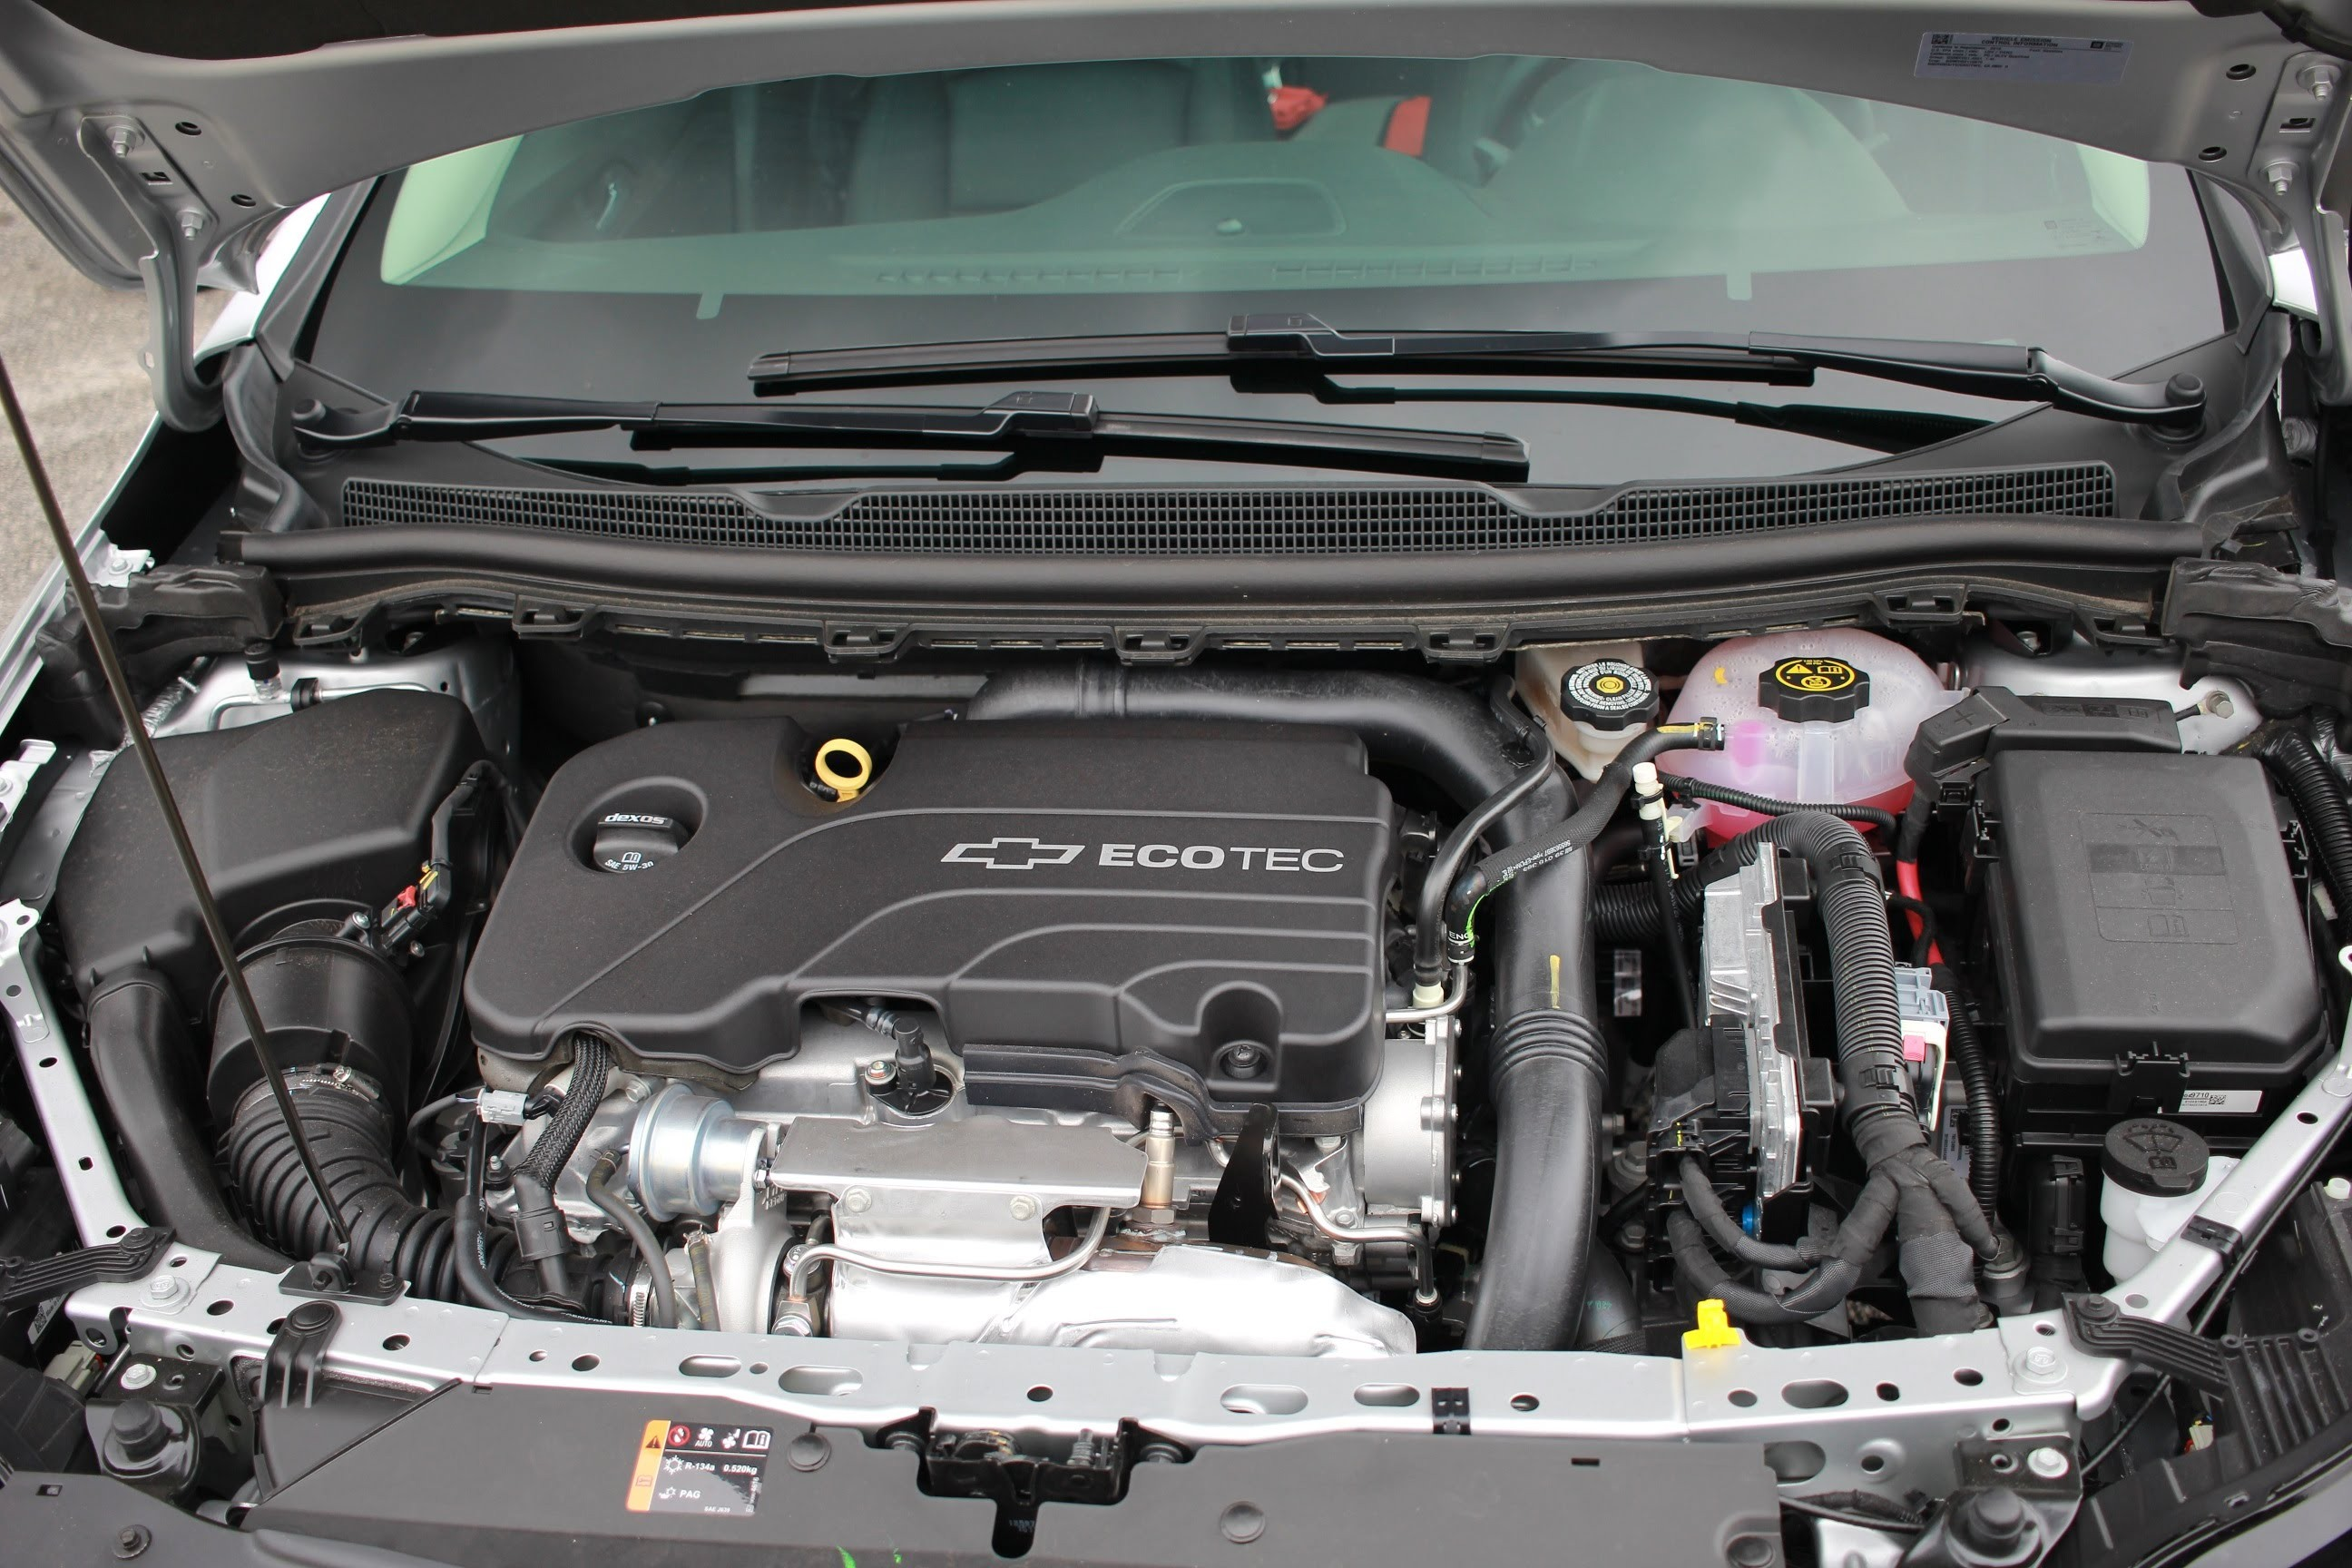 2012 Chevy Cruze Engine Diagram Chevy Cruze Battery Acdelco Chevy Cruze 2014 2015 Professional Agm Of 2012 Chevy Cruze Engine Diagram